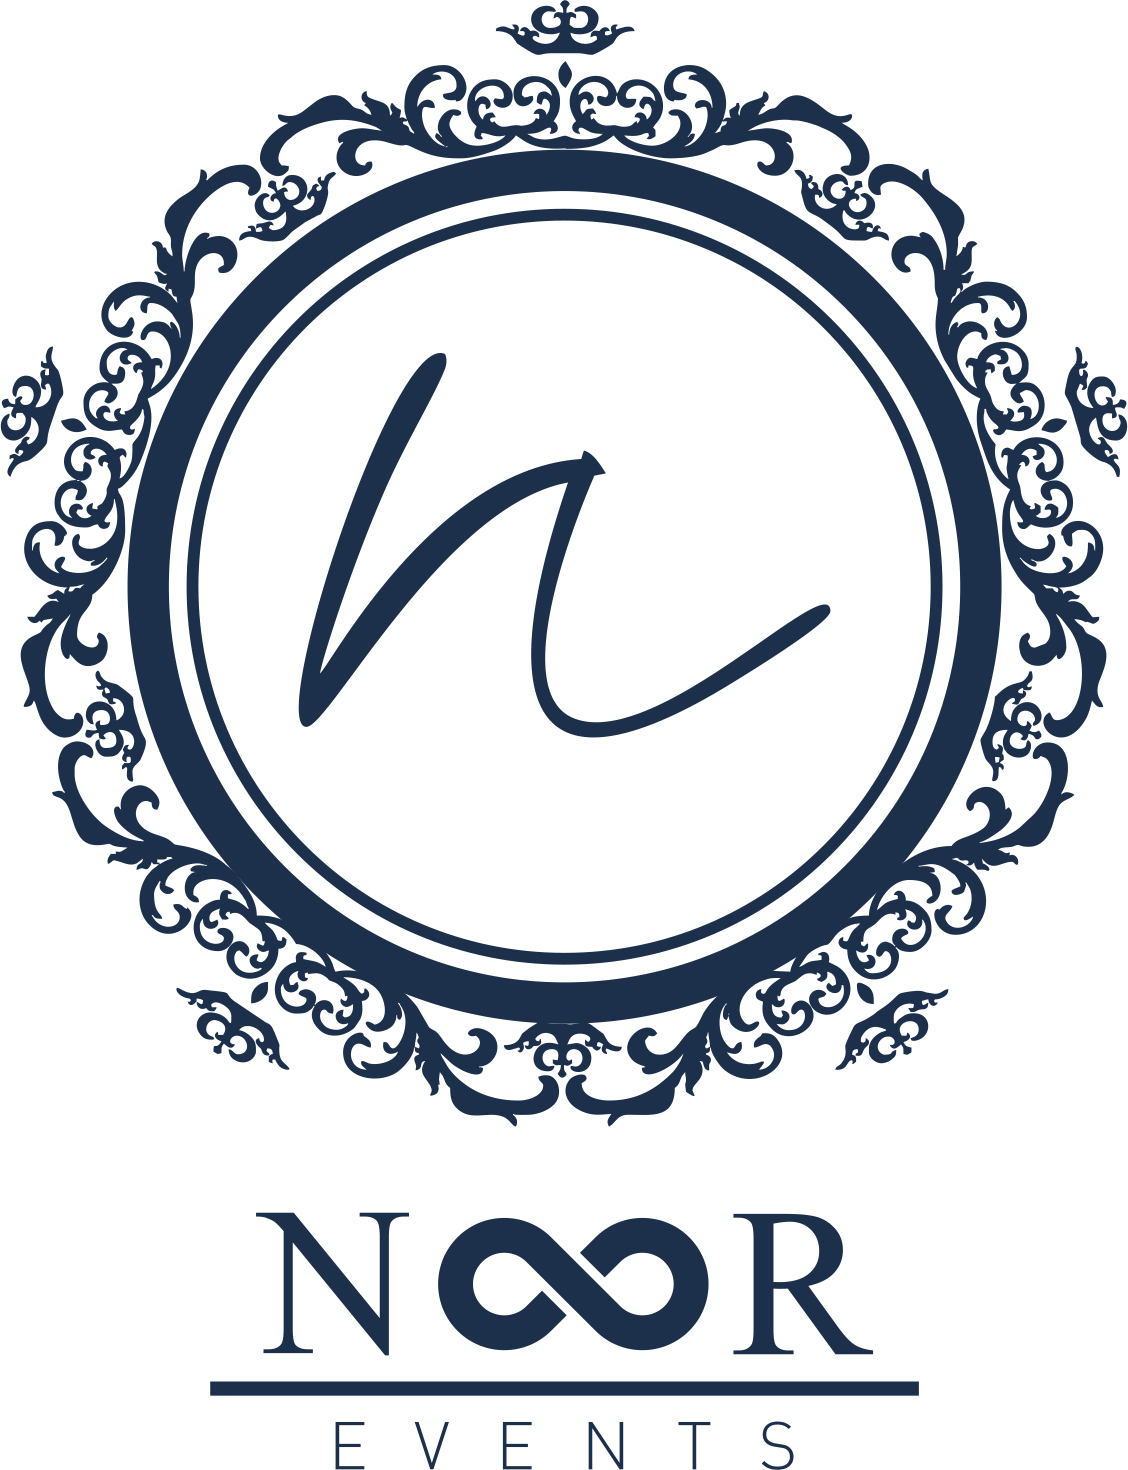 Noor Events